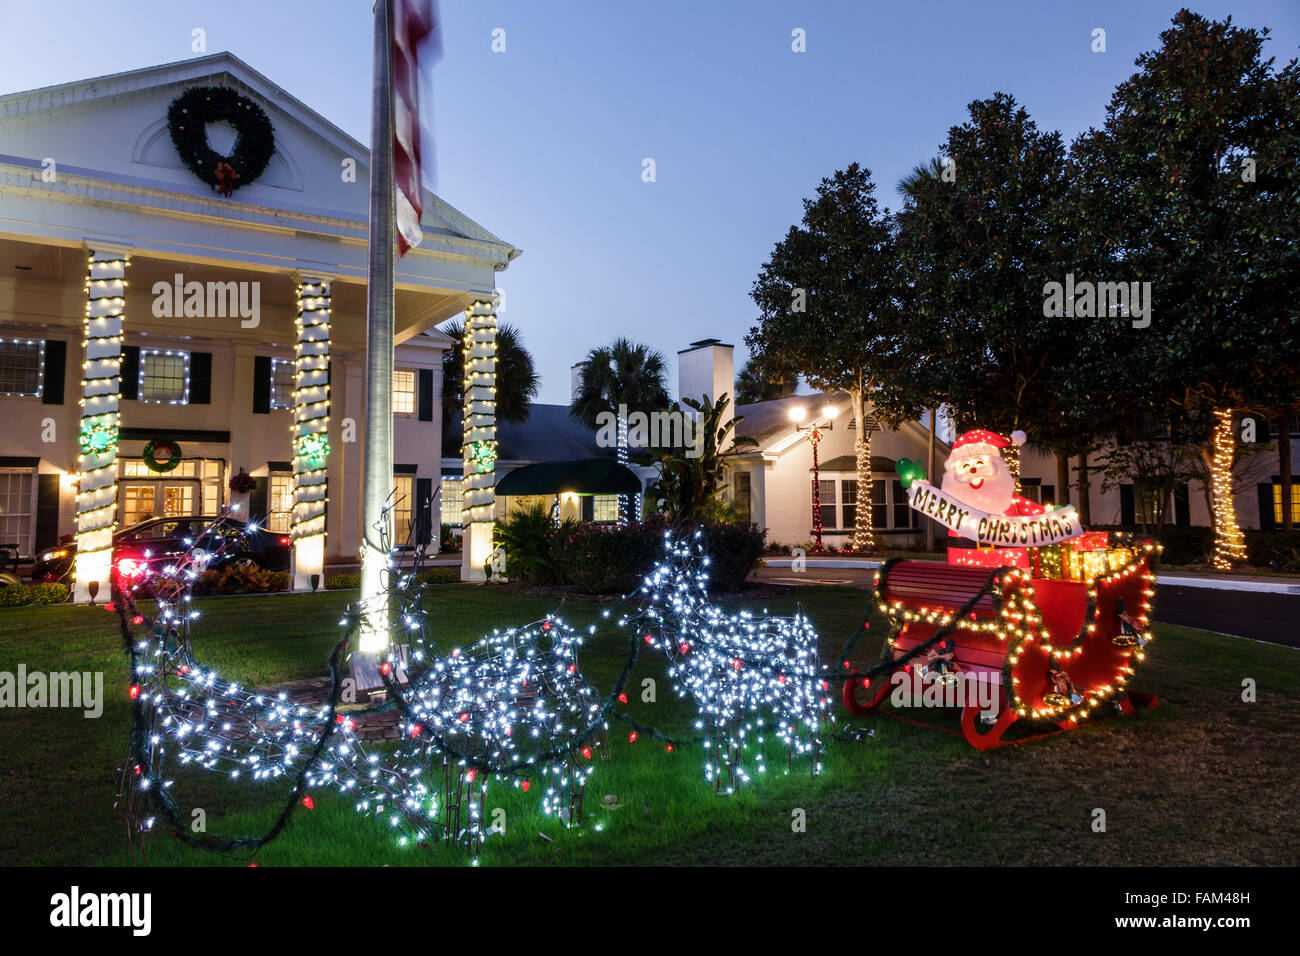 florida crystal river plantation on crystal river resort hotel christmas light display santa claus reindeer